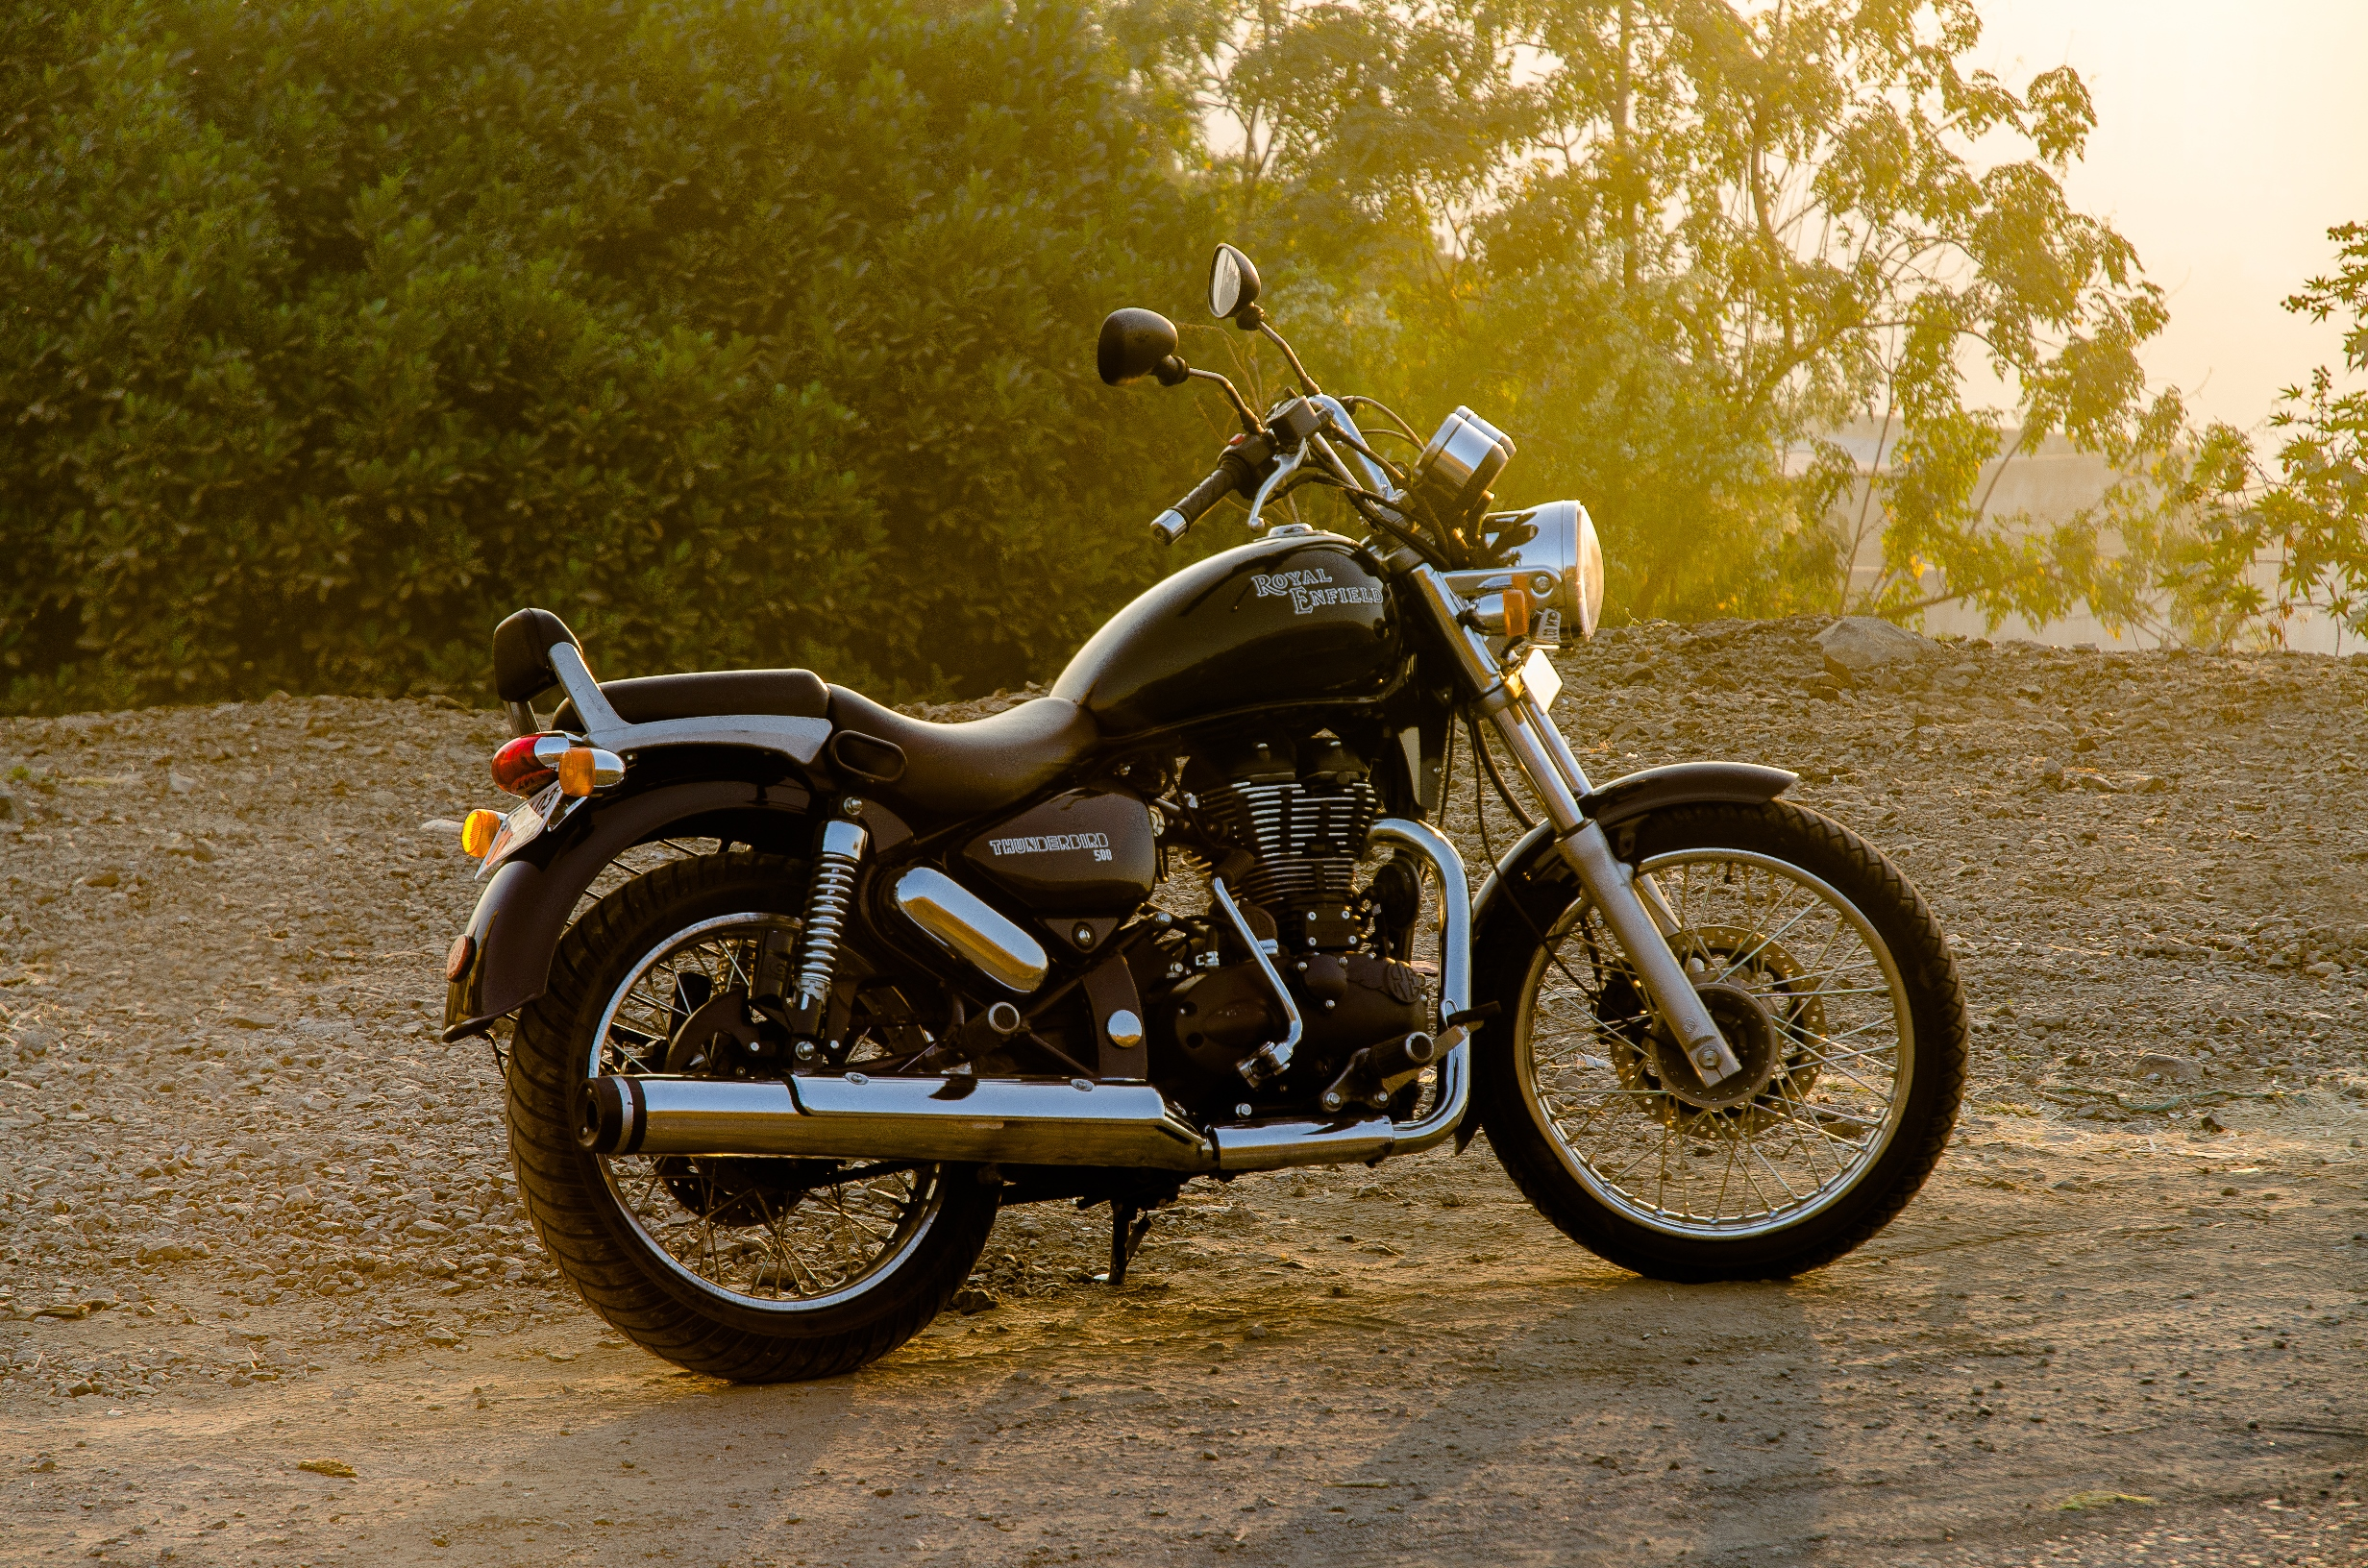 Honda Roadside Assistance >> Royal Enfield Thunderbird 500 road test by Dilip Bam | Automobilians.com – All About Automobiles